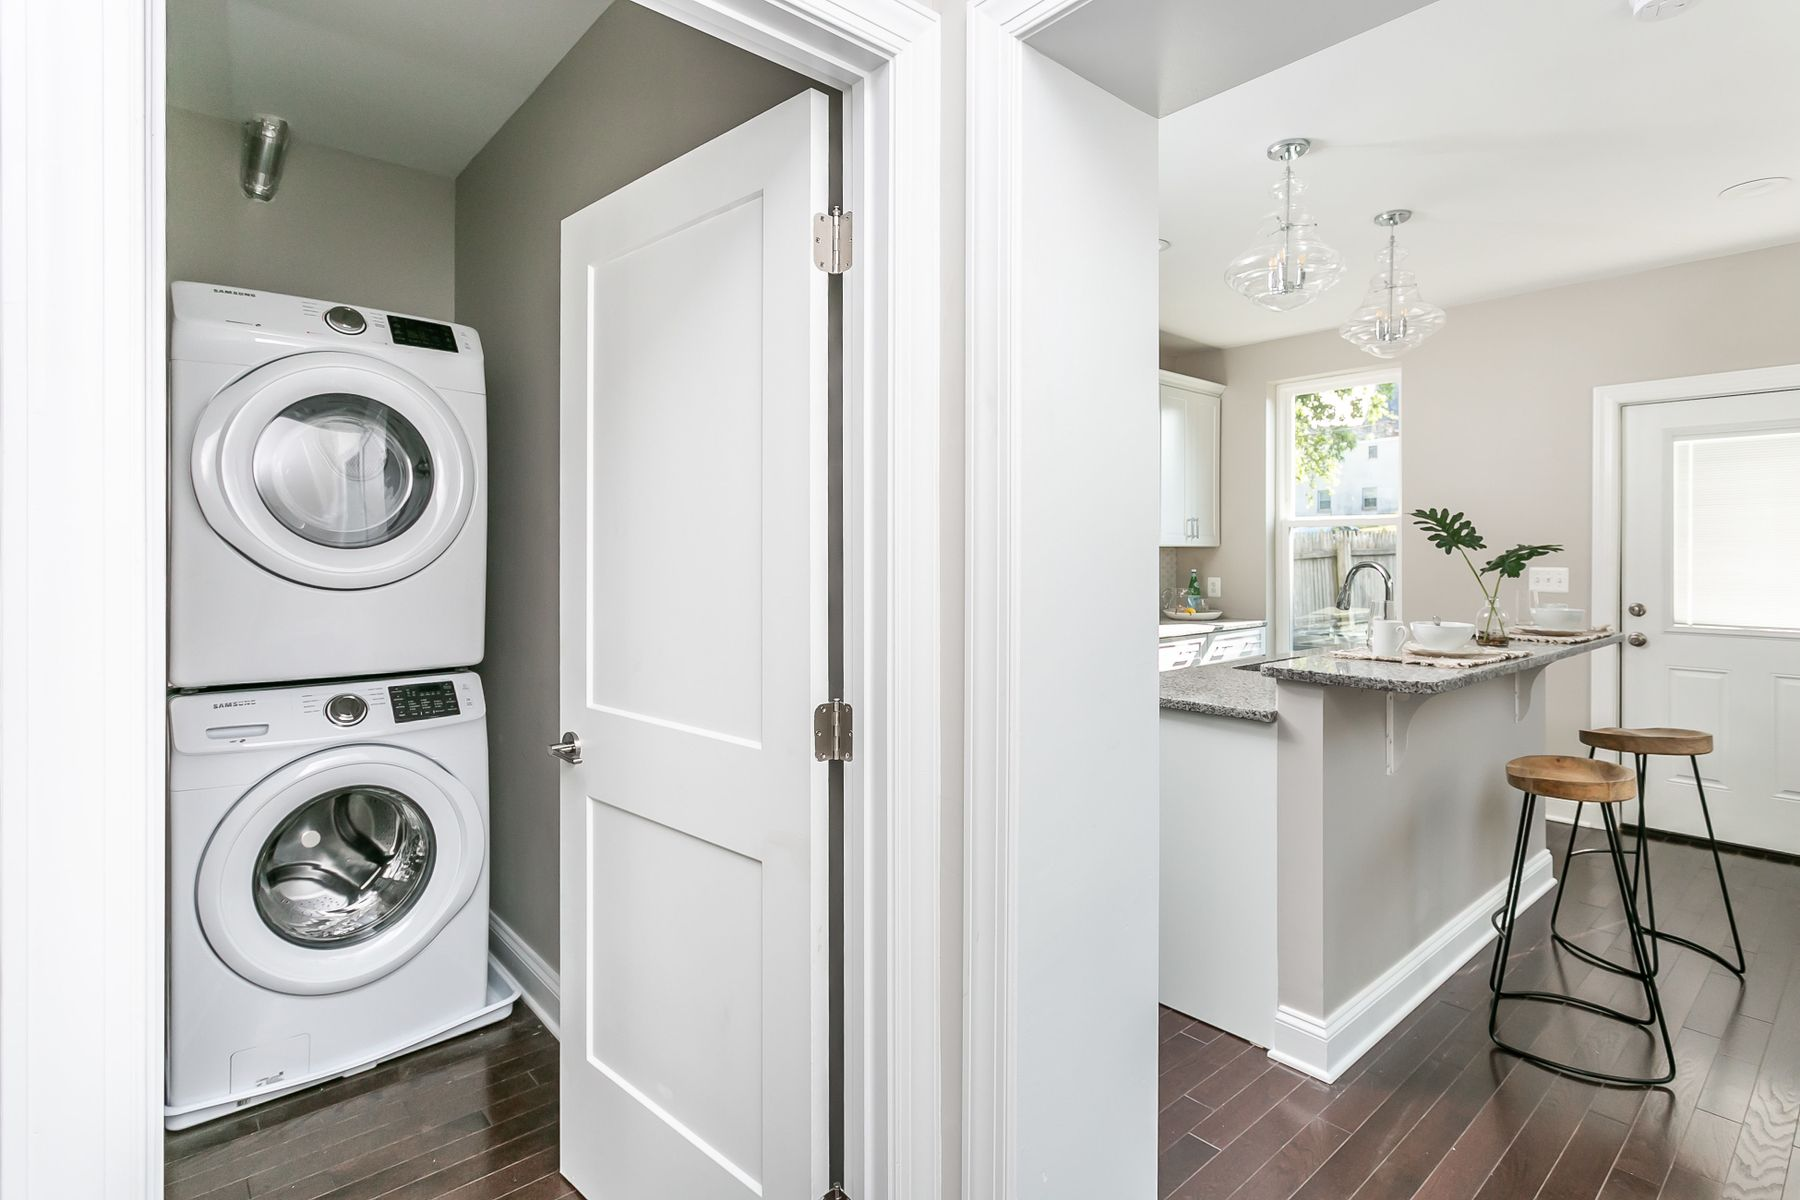 Laundry room with washer and dryer in entrance to brand new kitchen